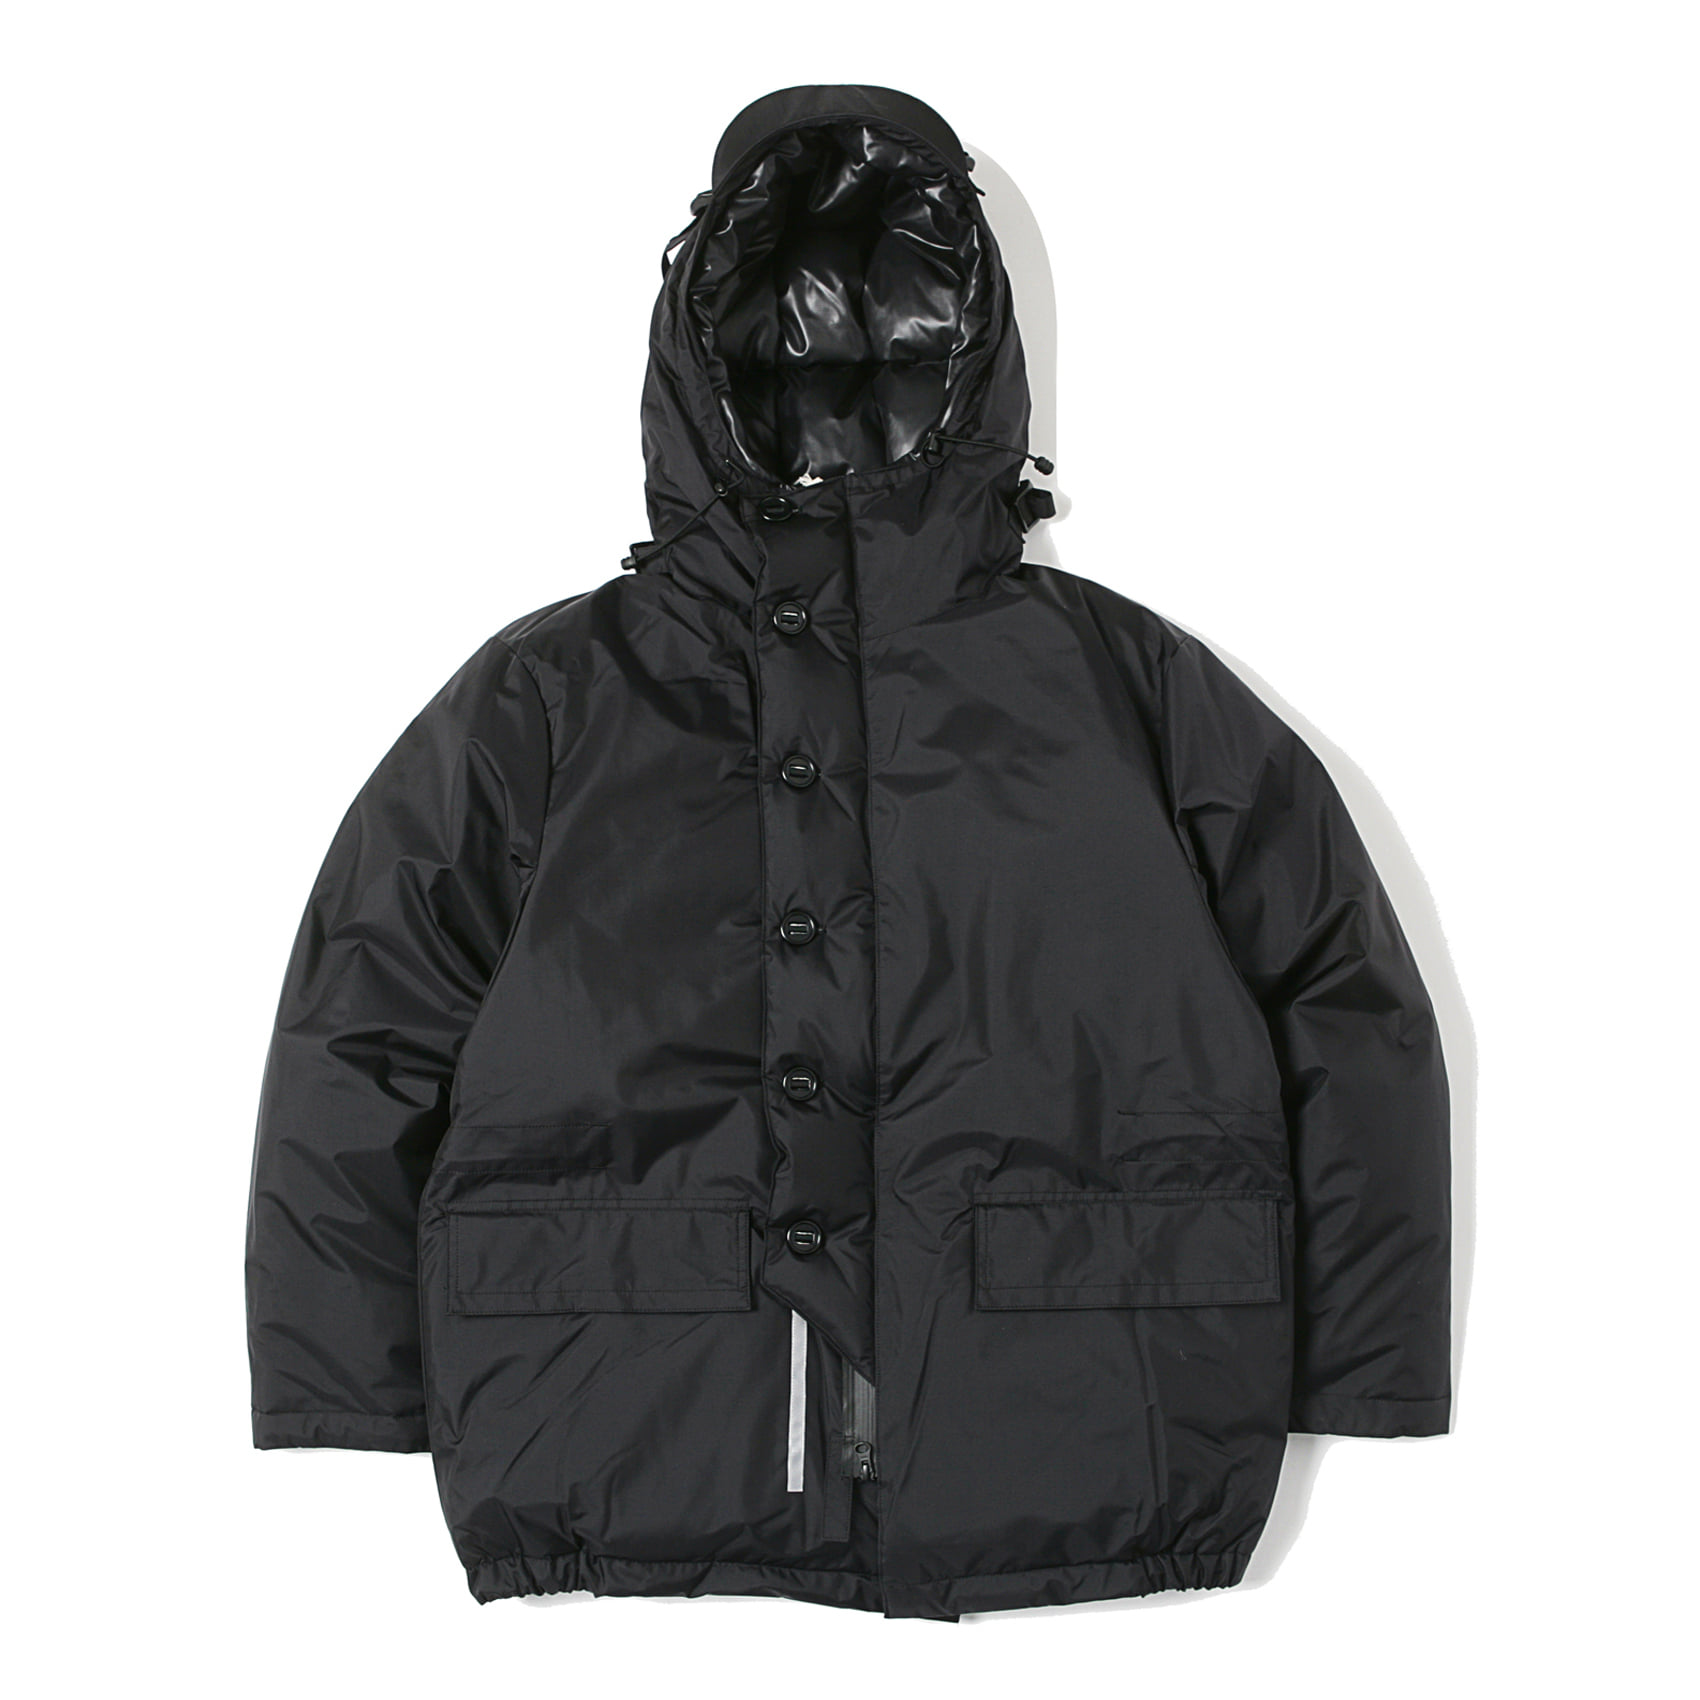 ARKTIKAL DOWN JACKET - BLACK